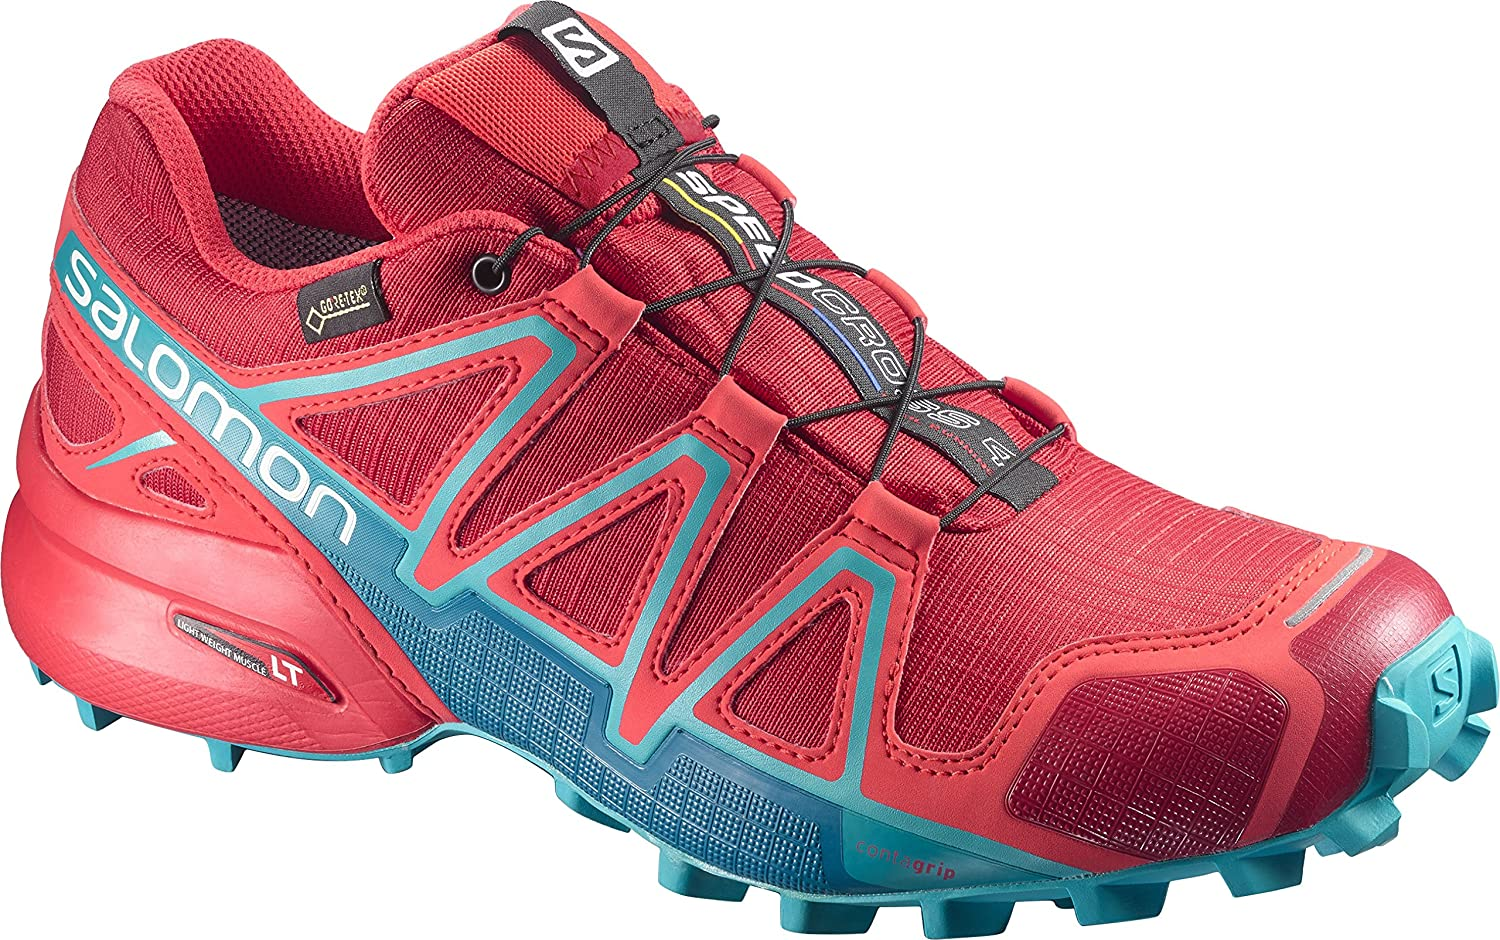 Salomon Women's Speedcross 4 GTX W Trail Running Shoe B01N5QVLCU 12 B(M) US|Barbados Cherry